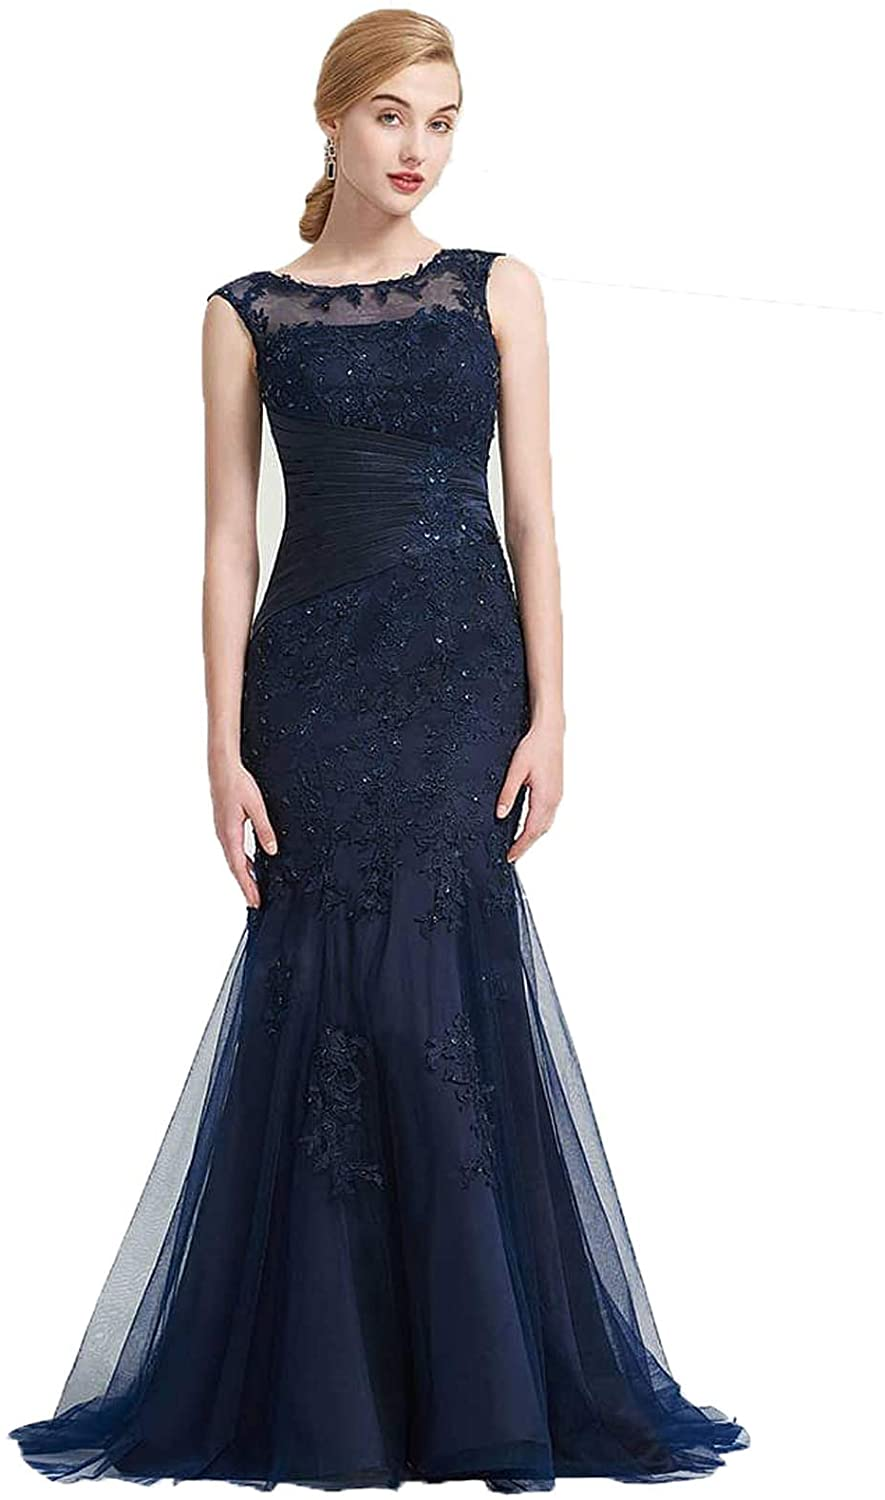 XIMILU Women's Lace Applique Mermaid Evening Dresses Sexy Prom Dresses Round Neck Formal Gowns